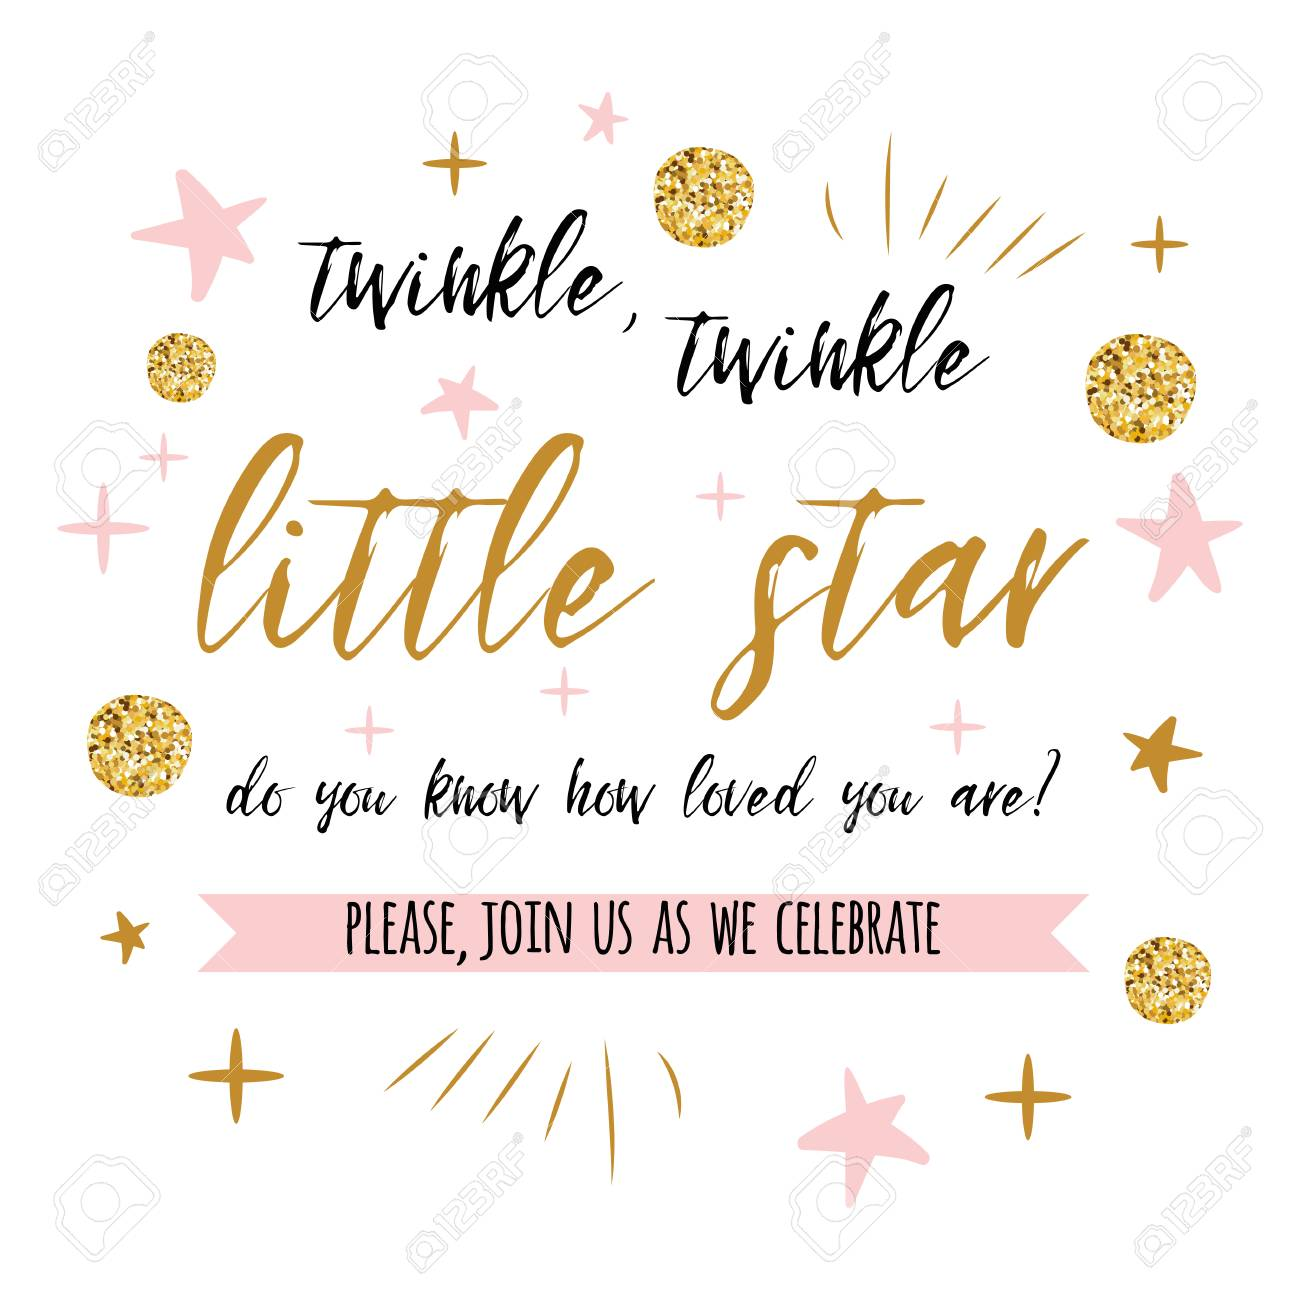 twinkle twinkle little star text with gold polka dot and pink